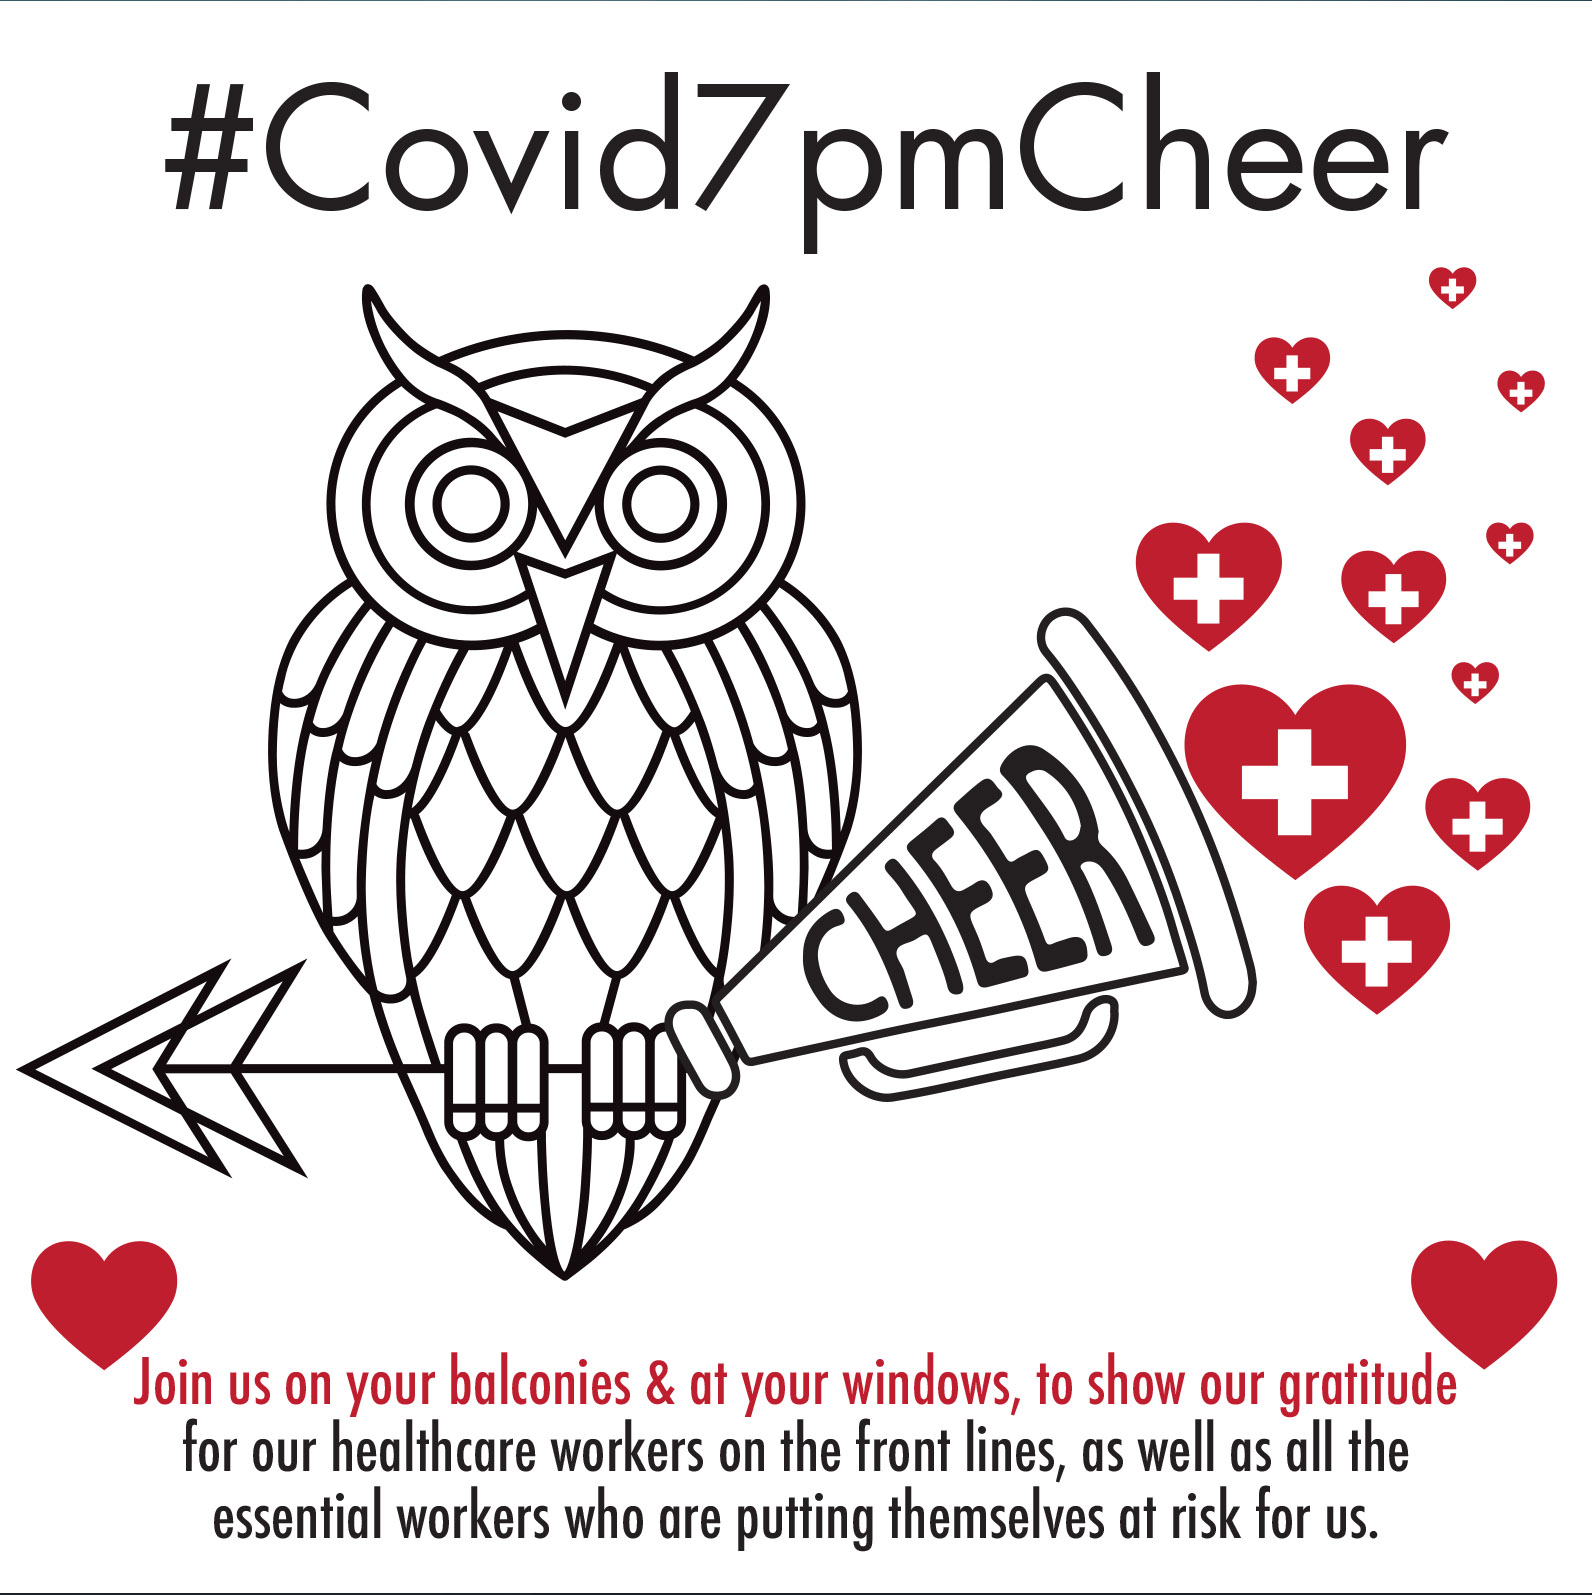 #COVID7PMCHEER